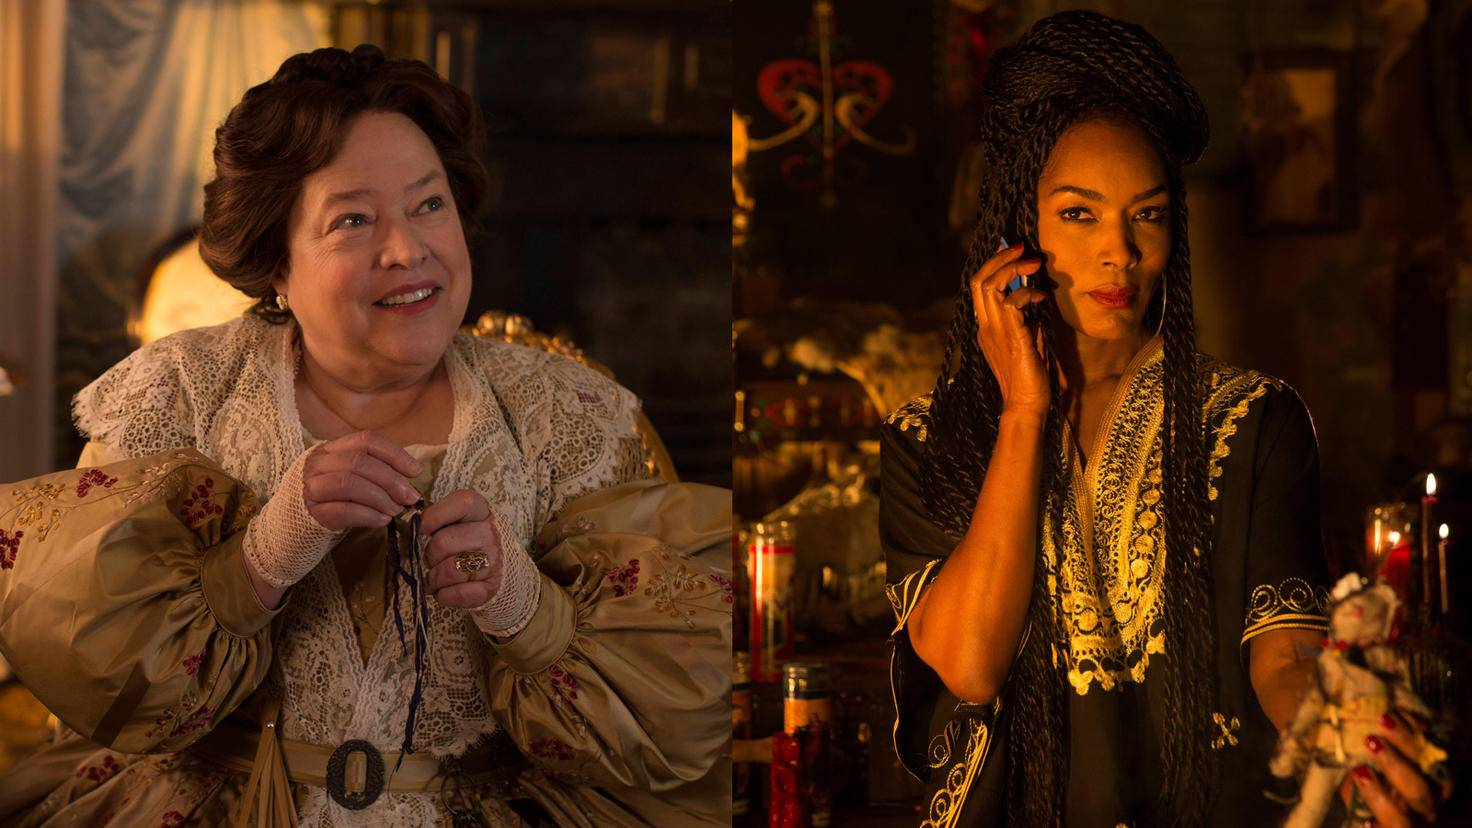 American Horror Story Coven-Staffel 3-Delphine Lalaurie-20th Century Fox-American Horror Story Coven-Staffel 3-Marie Laveau-20th Century Fox